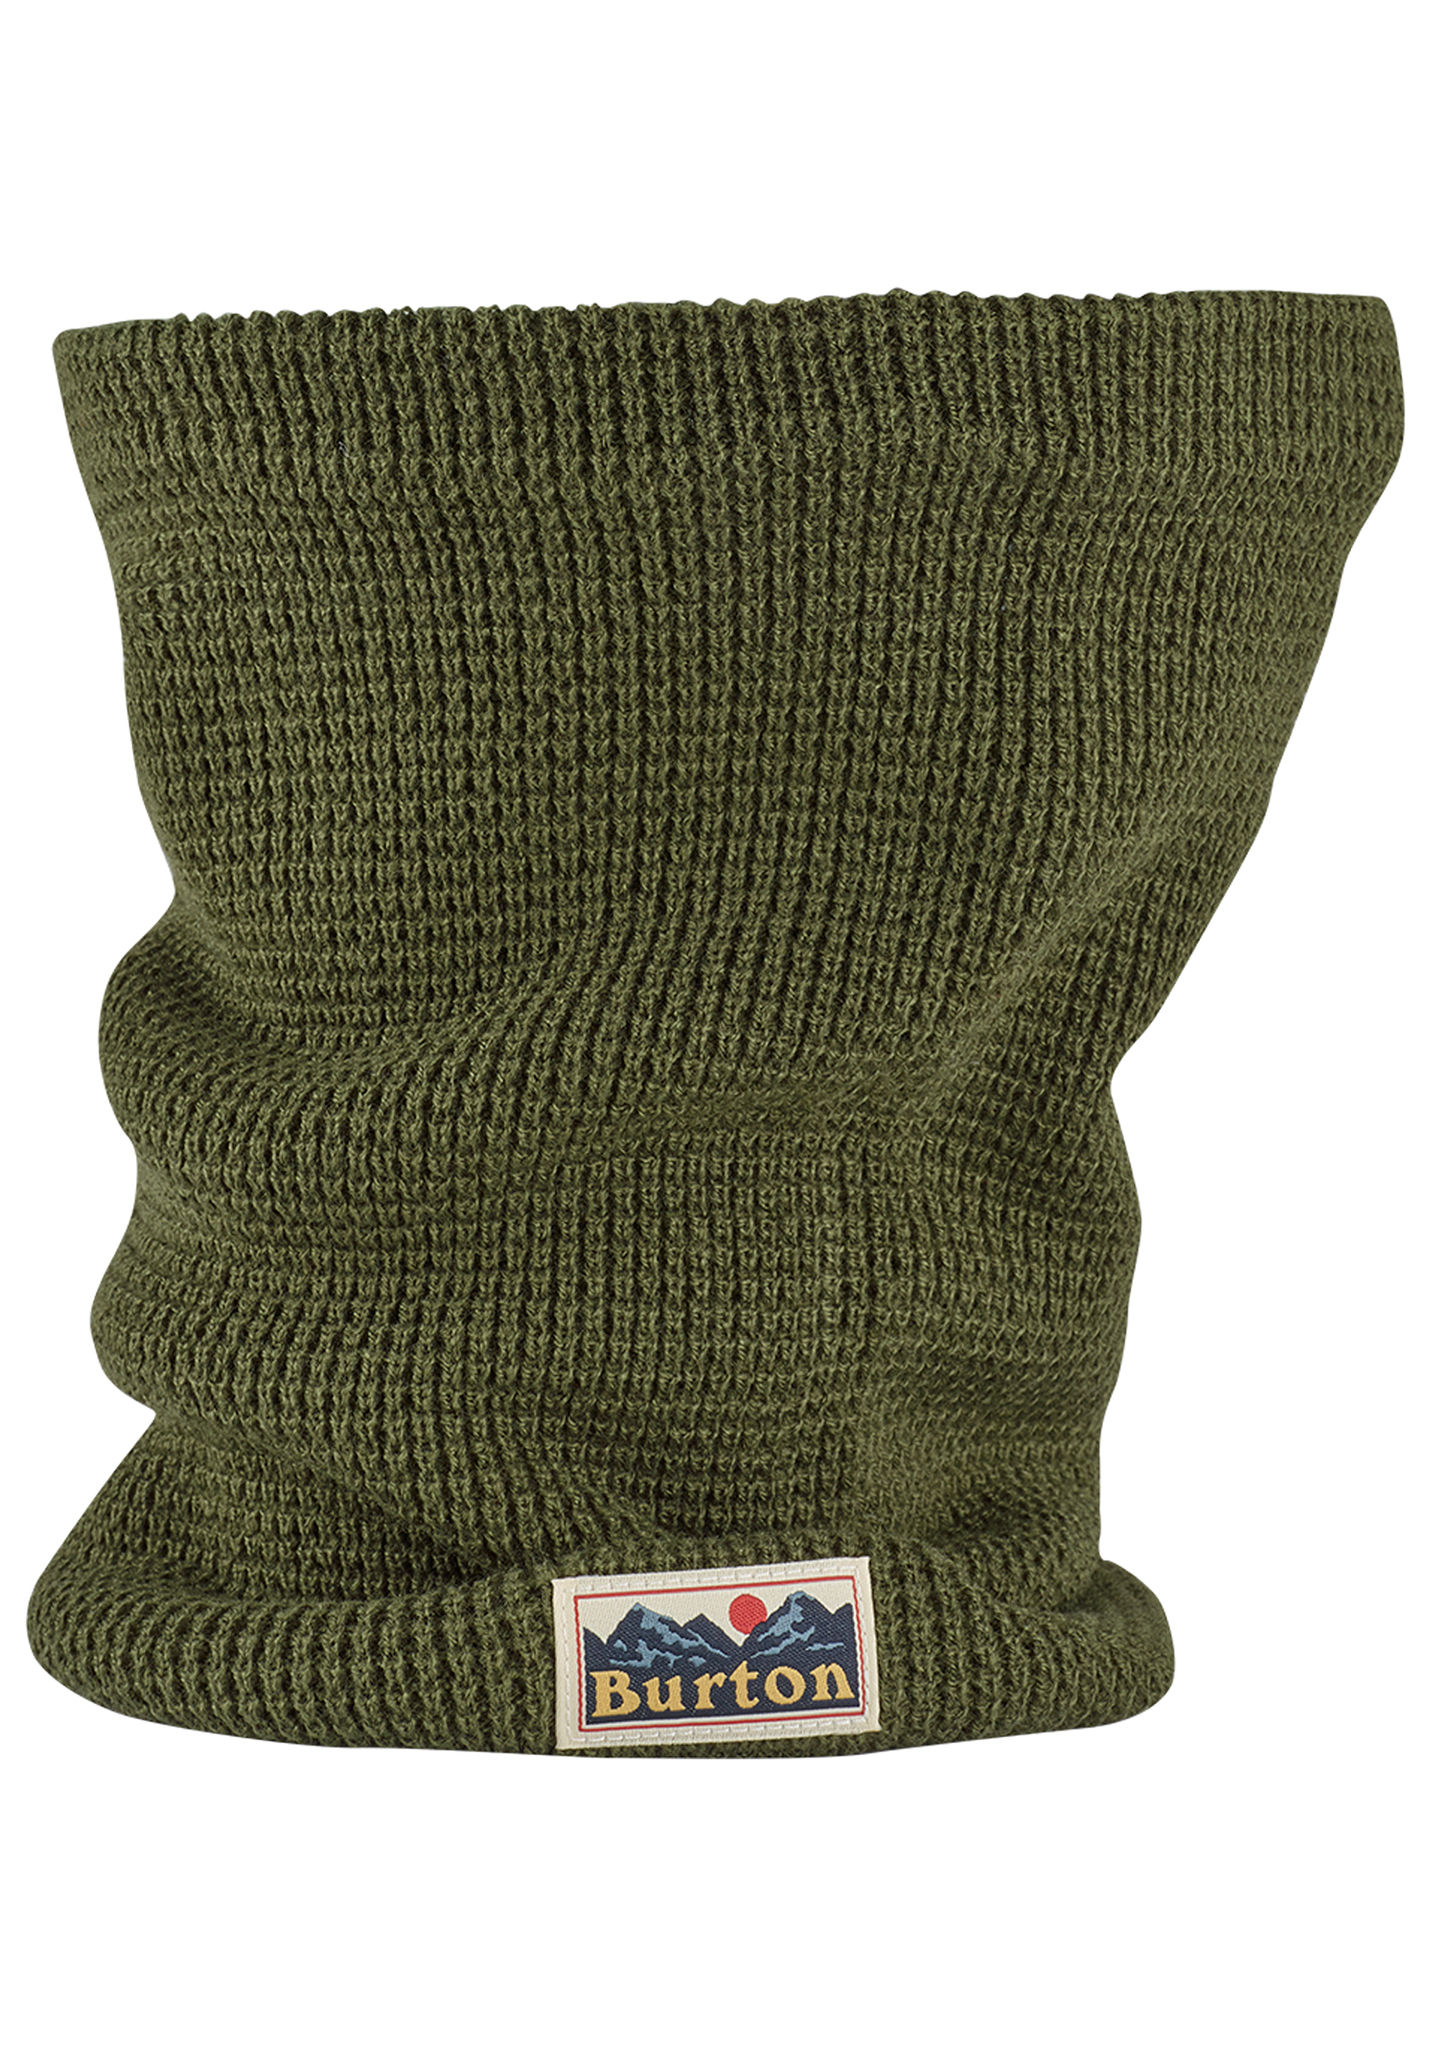 309952c4b71 Burton Waffle Neckwarmer - Neckwarmer - Green - Planet Sports